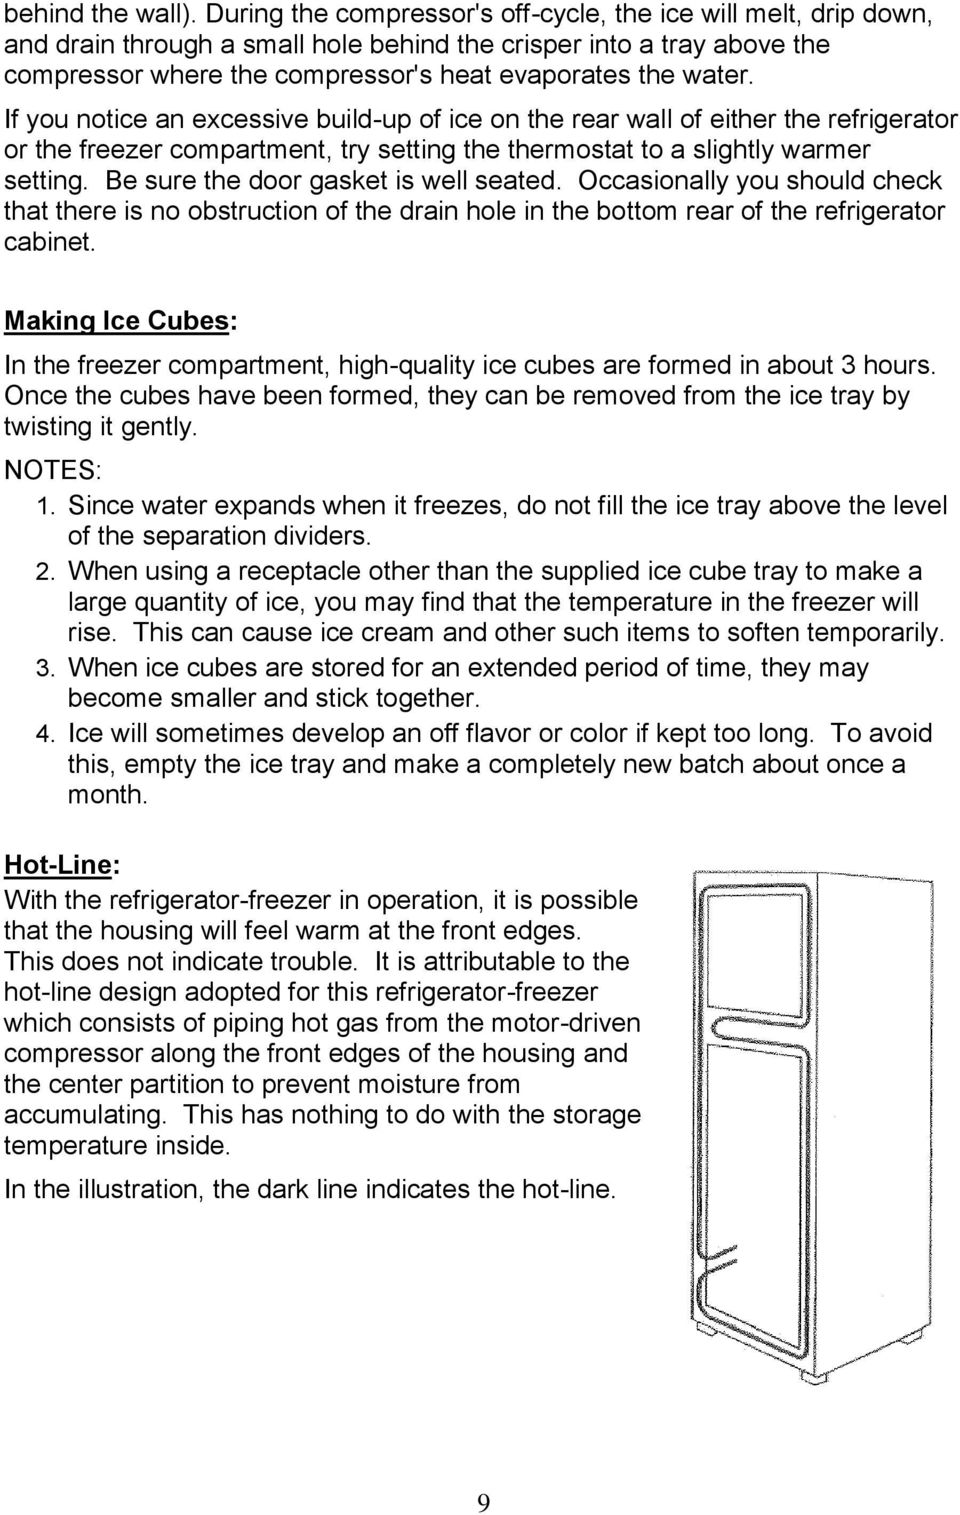 If you notice an excessive build-up of ice on the rear wall of either the refrigerator or the freezer compartment, try setting the thermostat to a slightly warmer setting.